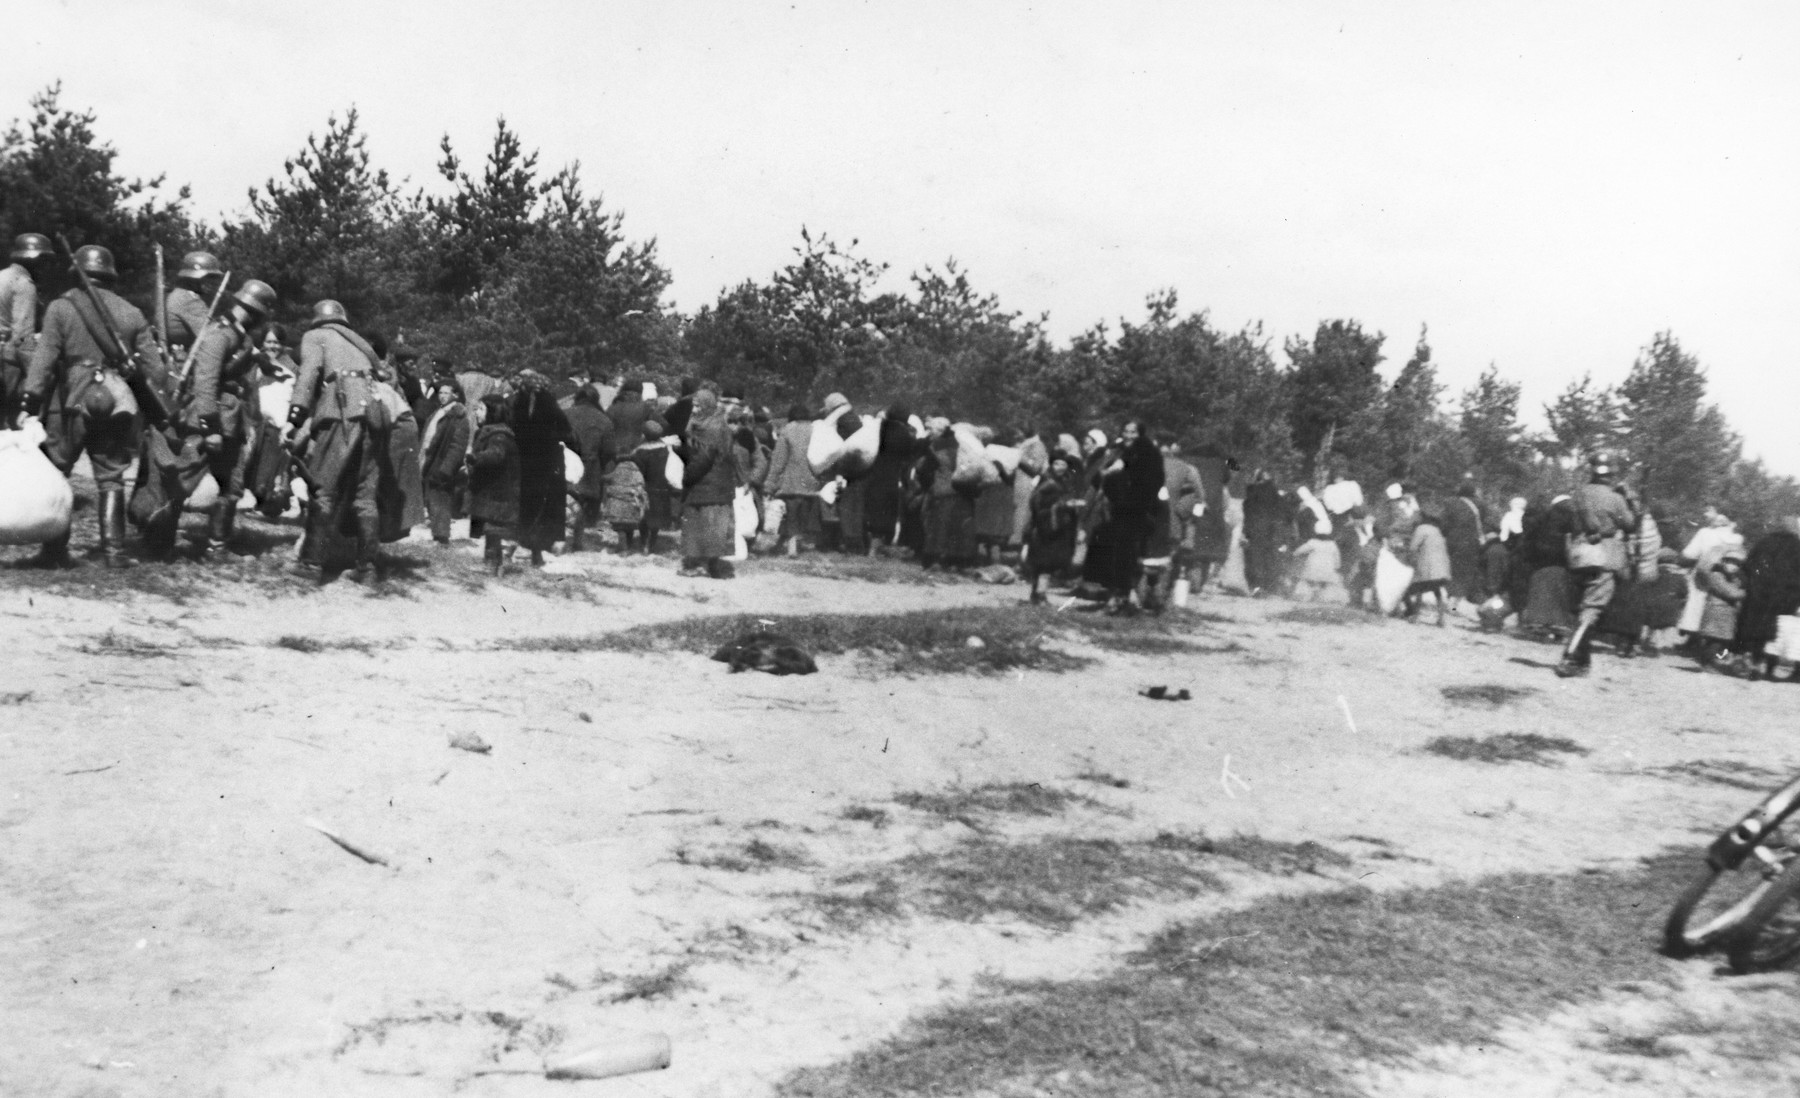 German and perhaps local gendarmes round Jewish elderly, women and children in a killing action in Lithuania.